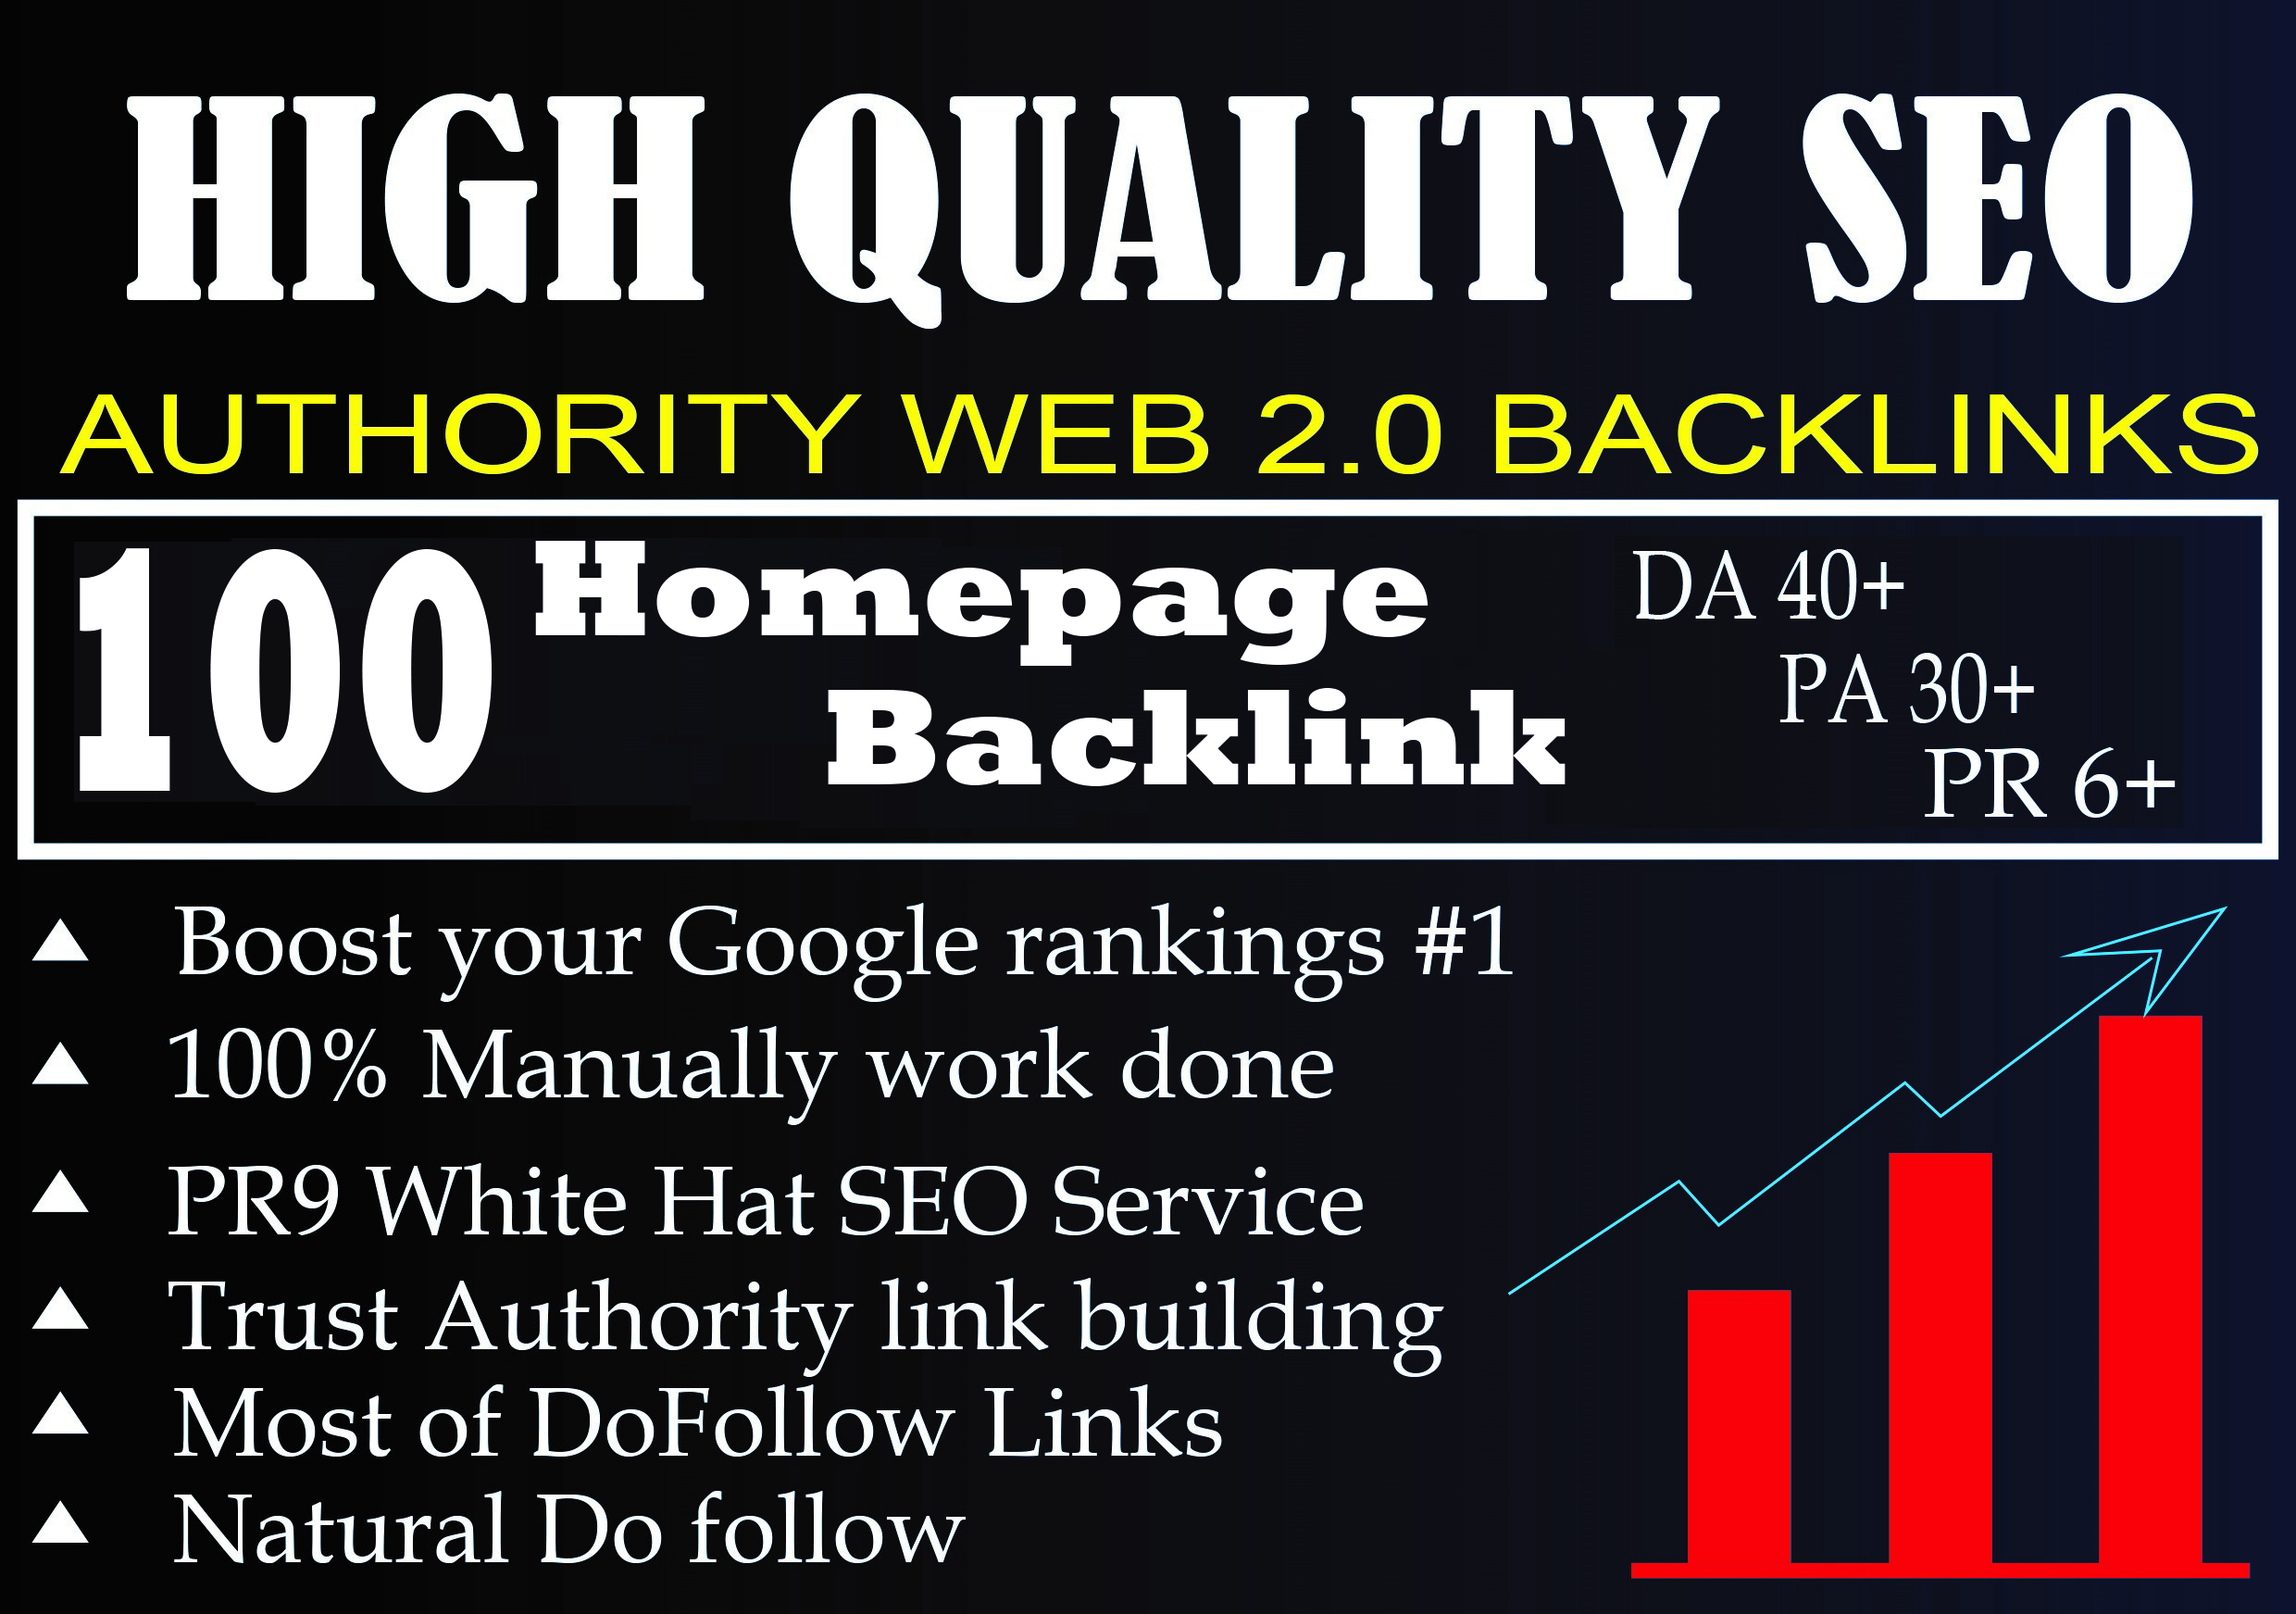 I Will Provide DA 40+ PA 30+ PR 6+ Web2.0 100+ homepage Backlink in 100 do-follow in unique site